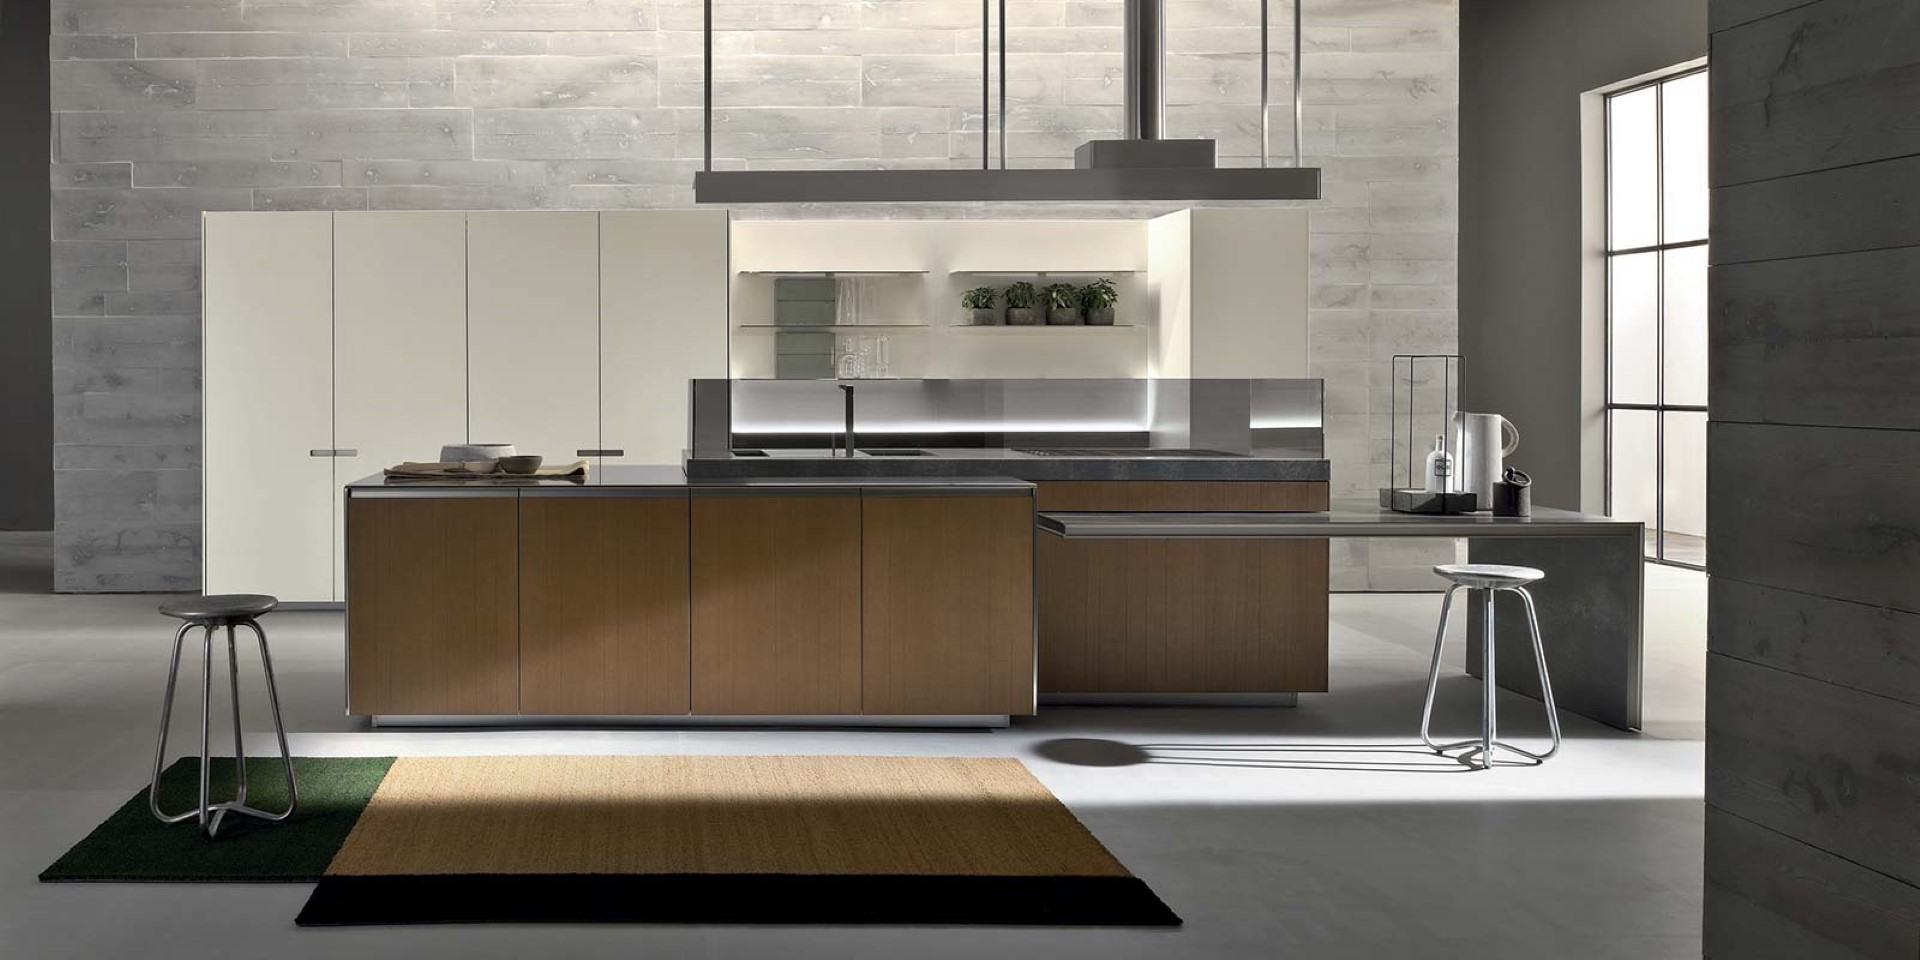 Marche Cucine Moderne. Cucine Outlet Kitchen Store With ...